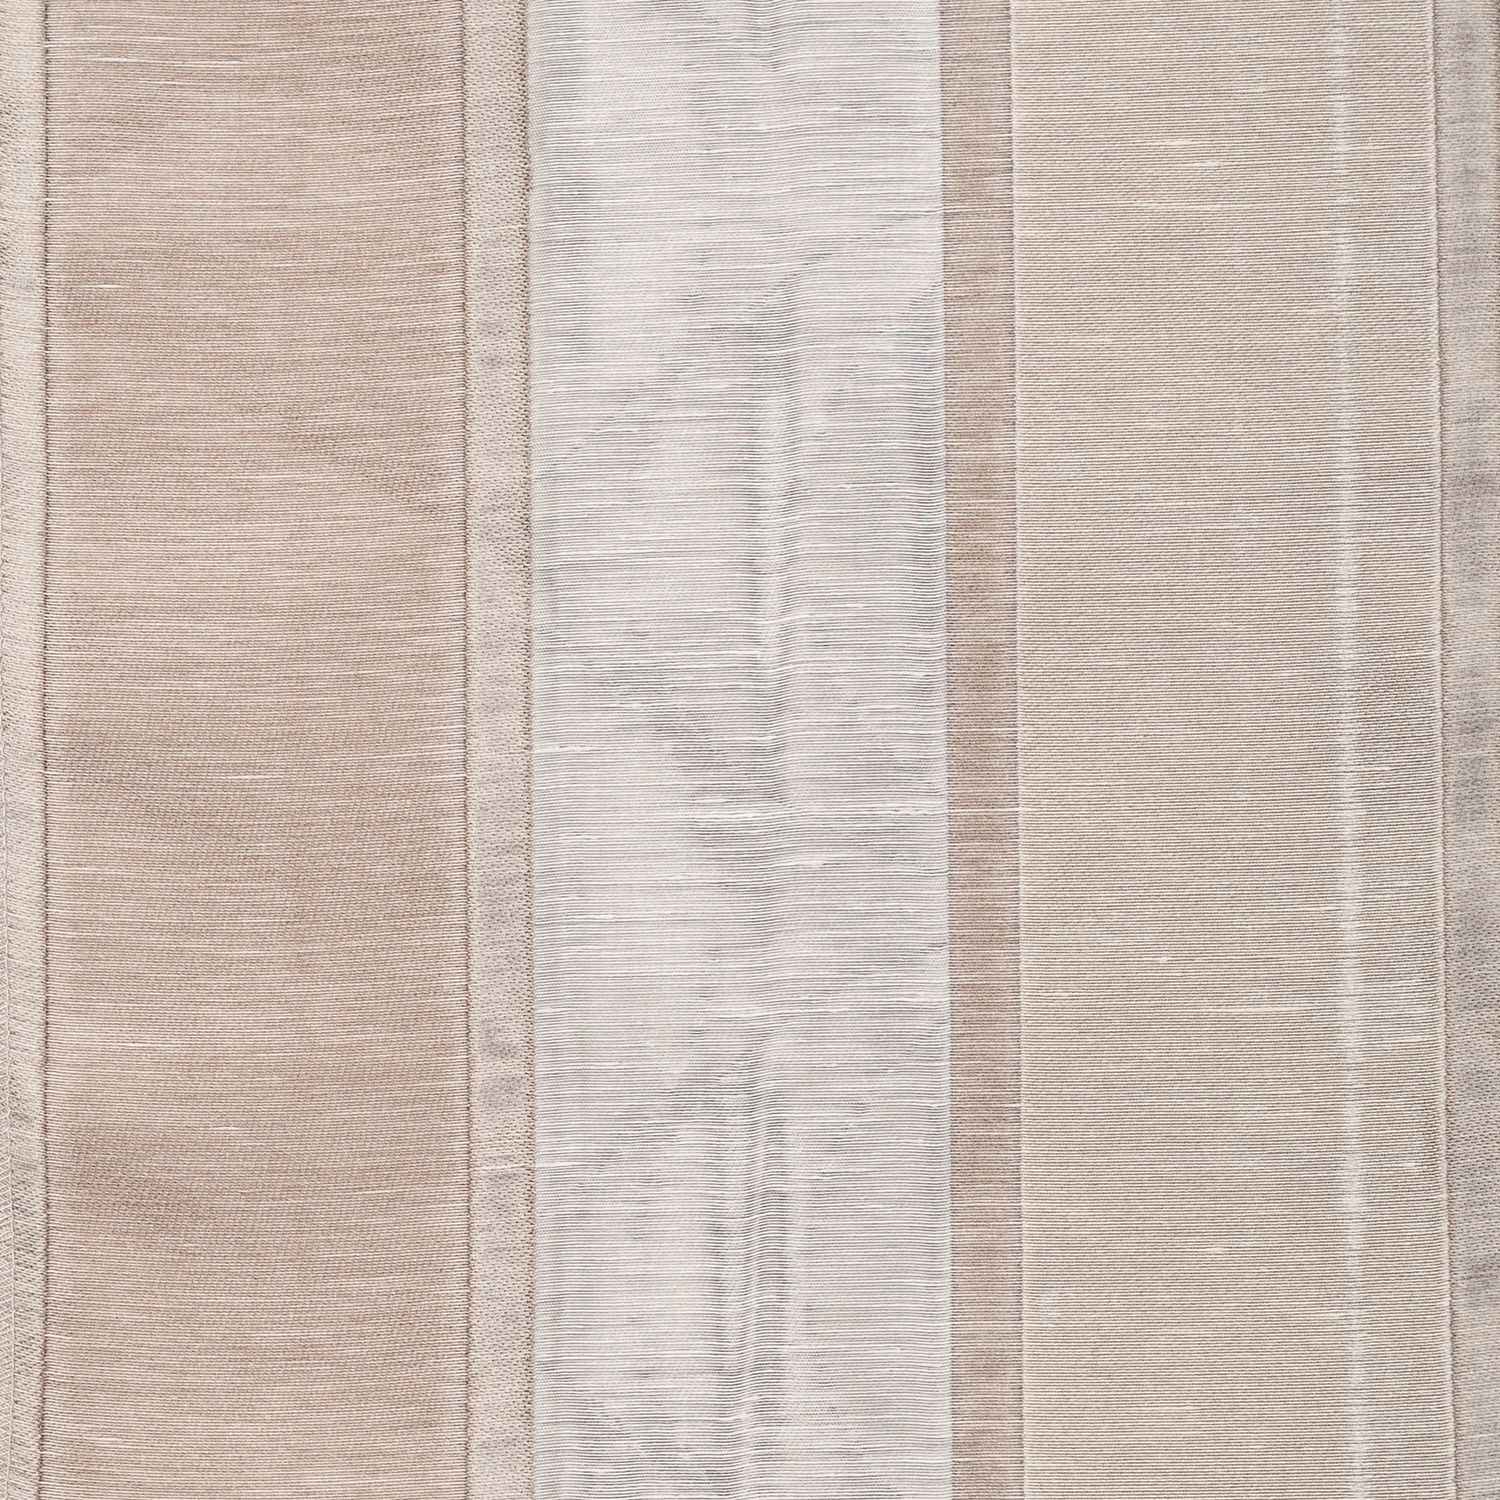 Softline Home Fashions Drapery Colma Stripe Panel - Natural